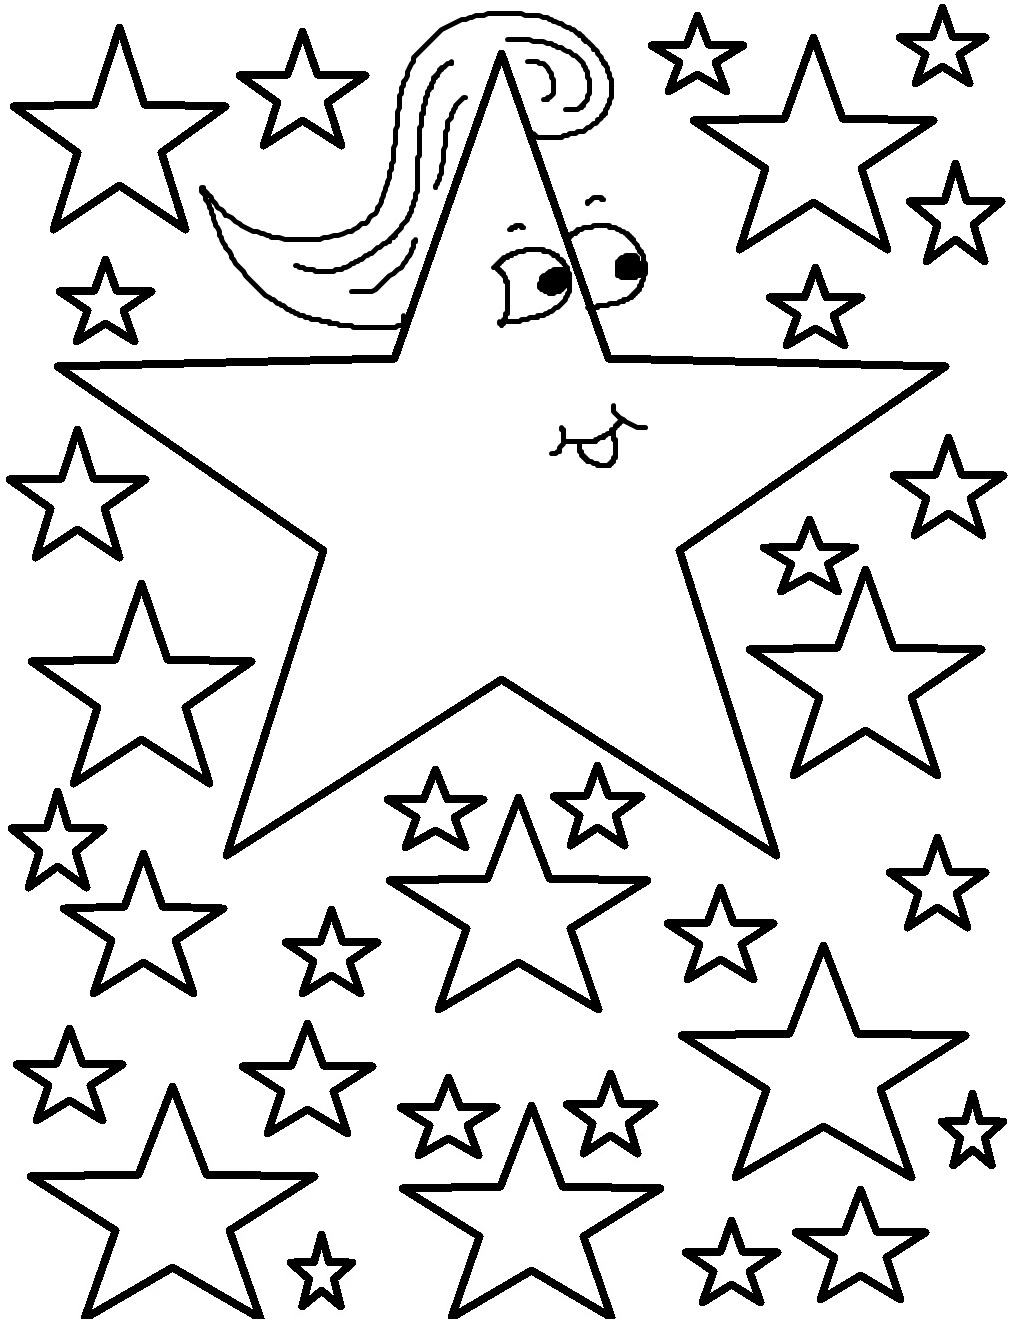 coloring pages of stars 60 star coloring pages customize and print ad free pdf coloring of pages stars